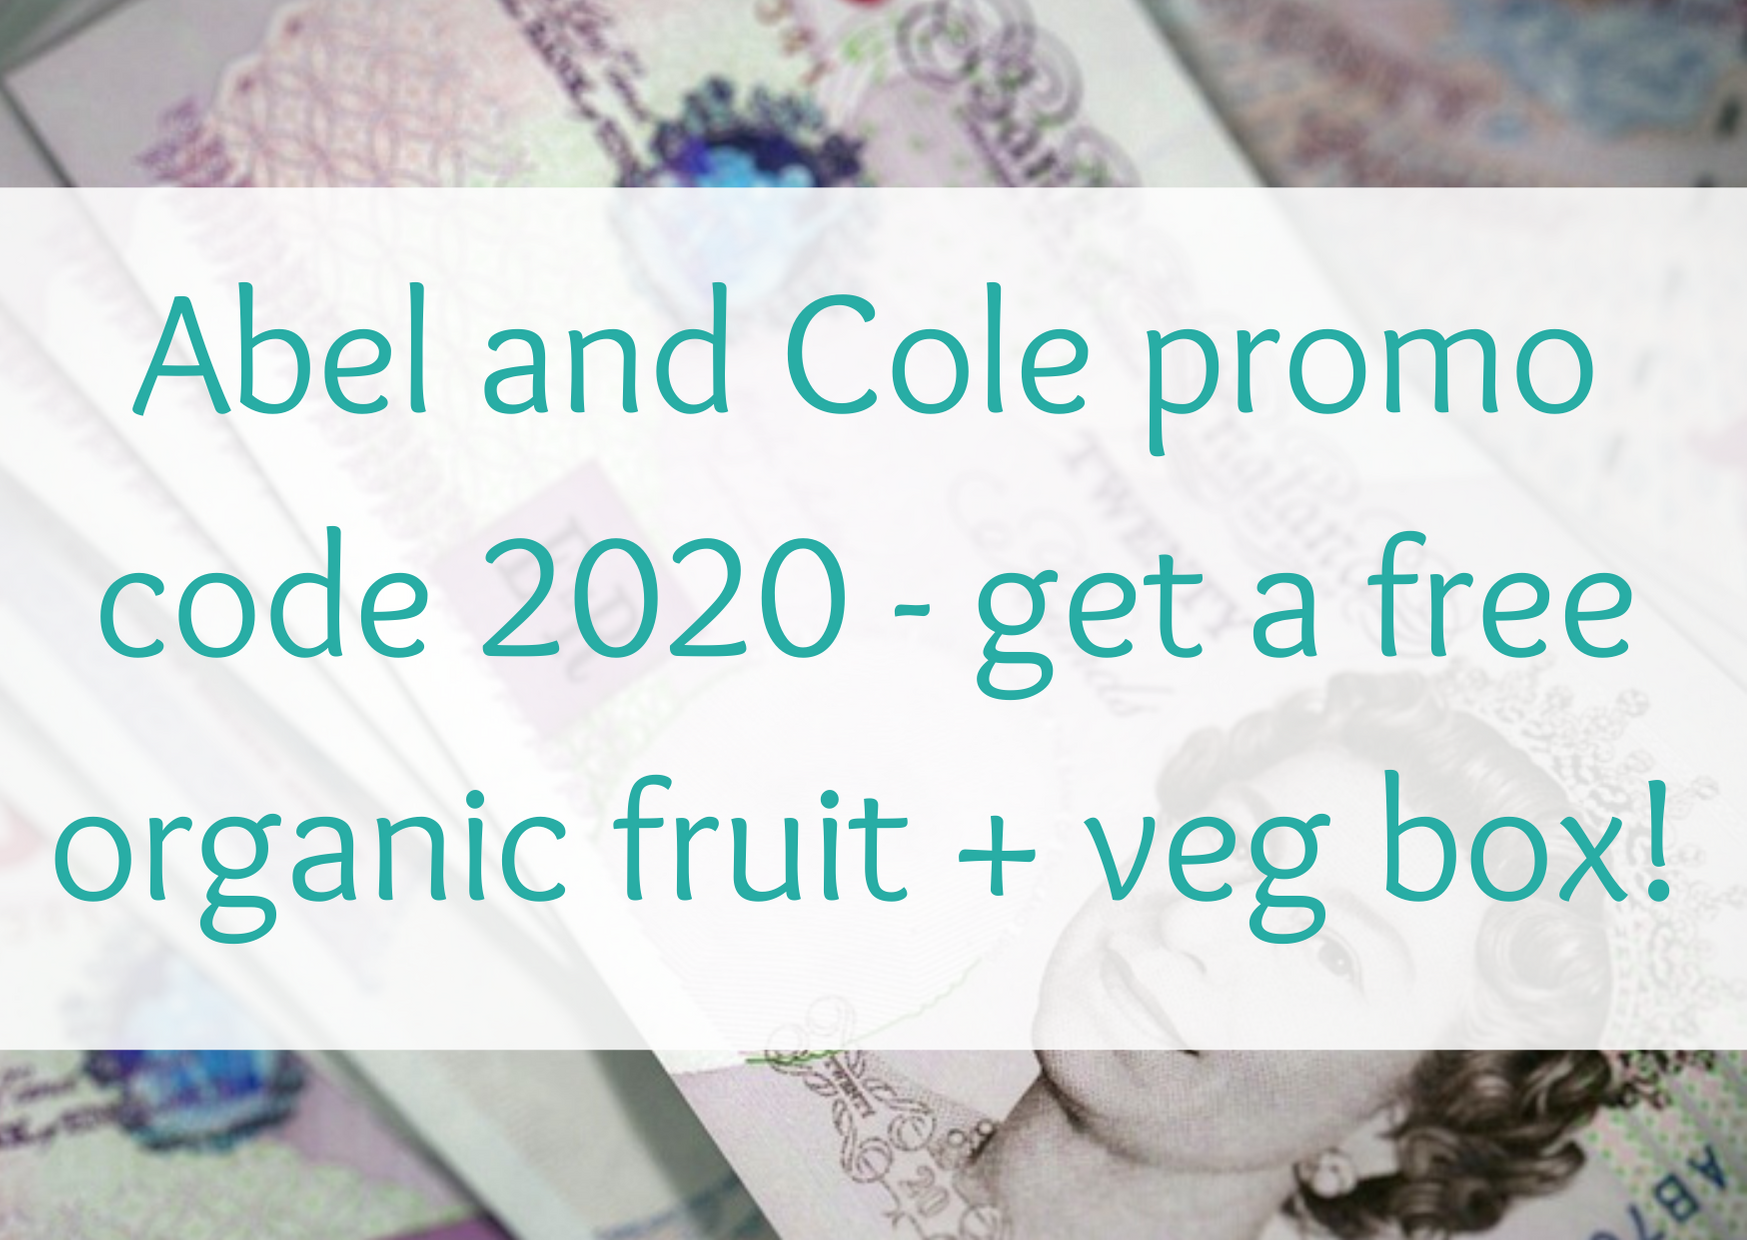 Abel and Cole promo code 2020